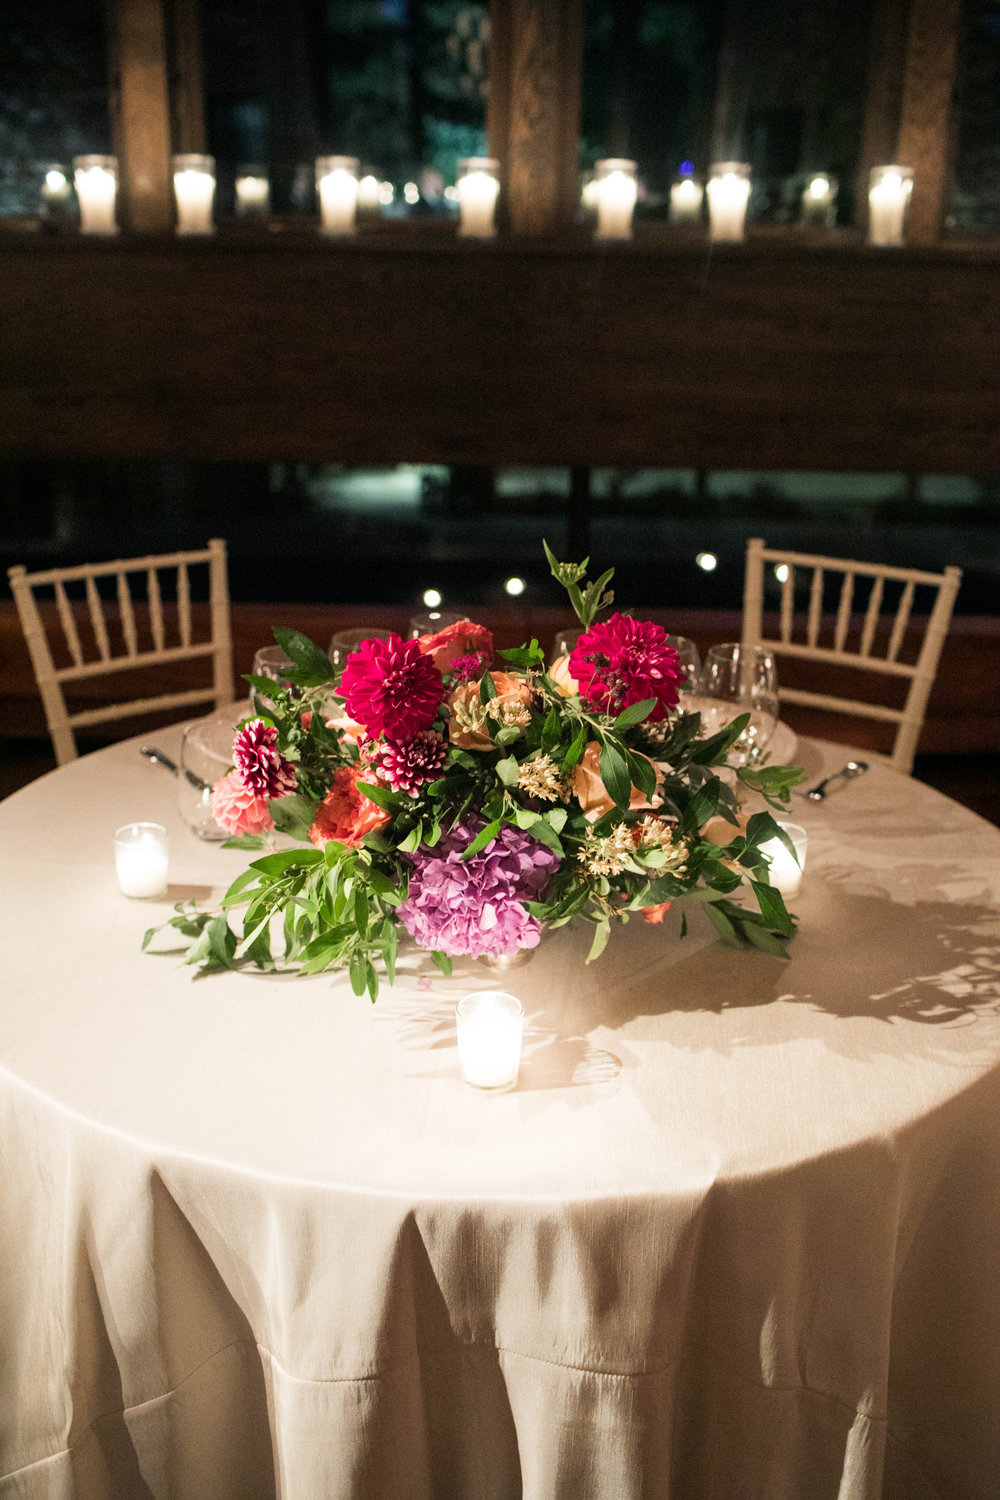 Elegant Affair Wedding at the Farm - Flowers by Denise Fasanello Flowers - Photos by Meg Miller 7.JPG